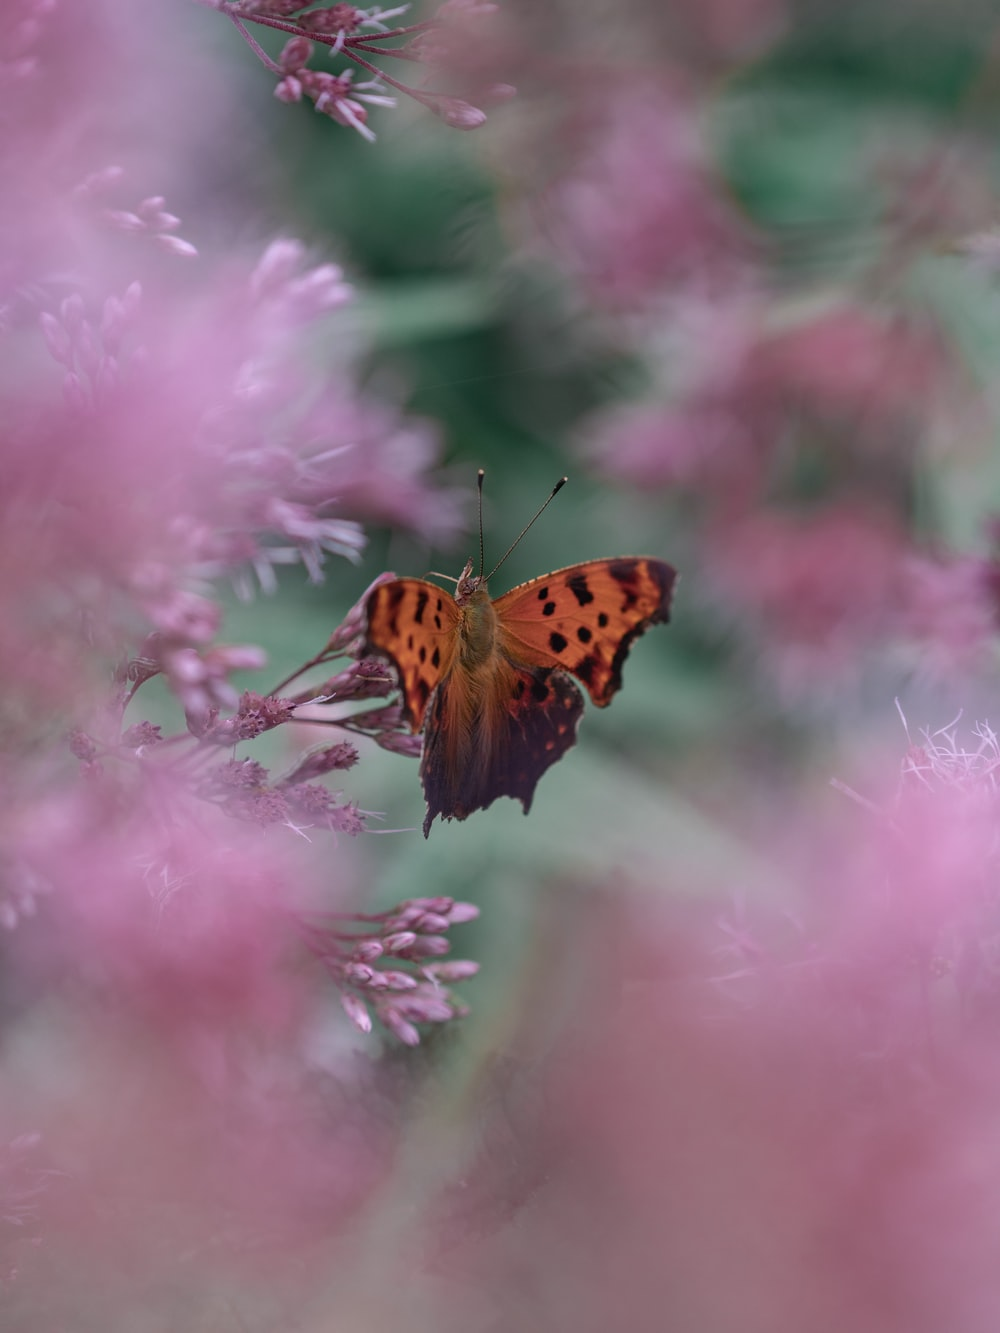 Butterfly Flower Plant And Bokeh Hd Photo By Aaron Burden